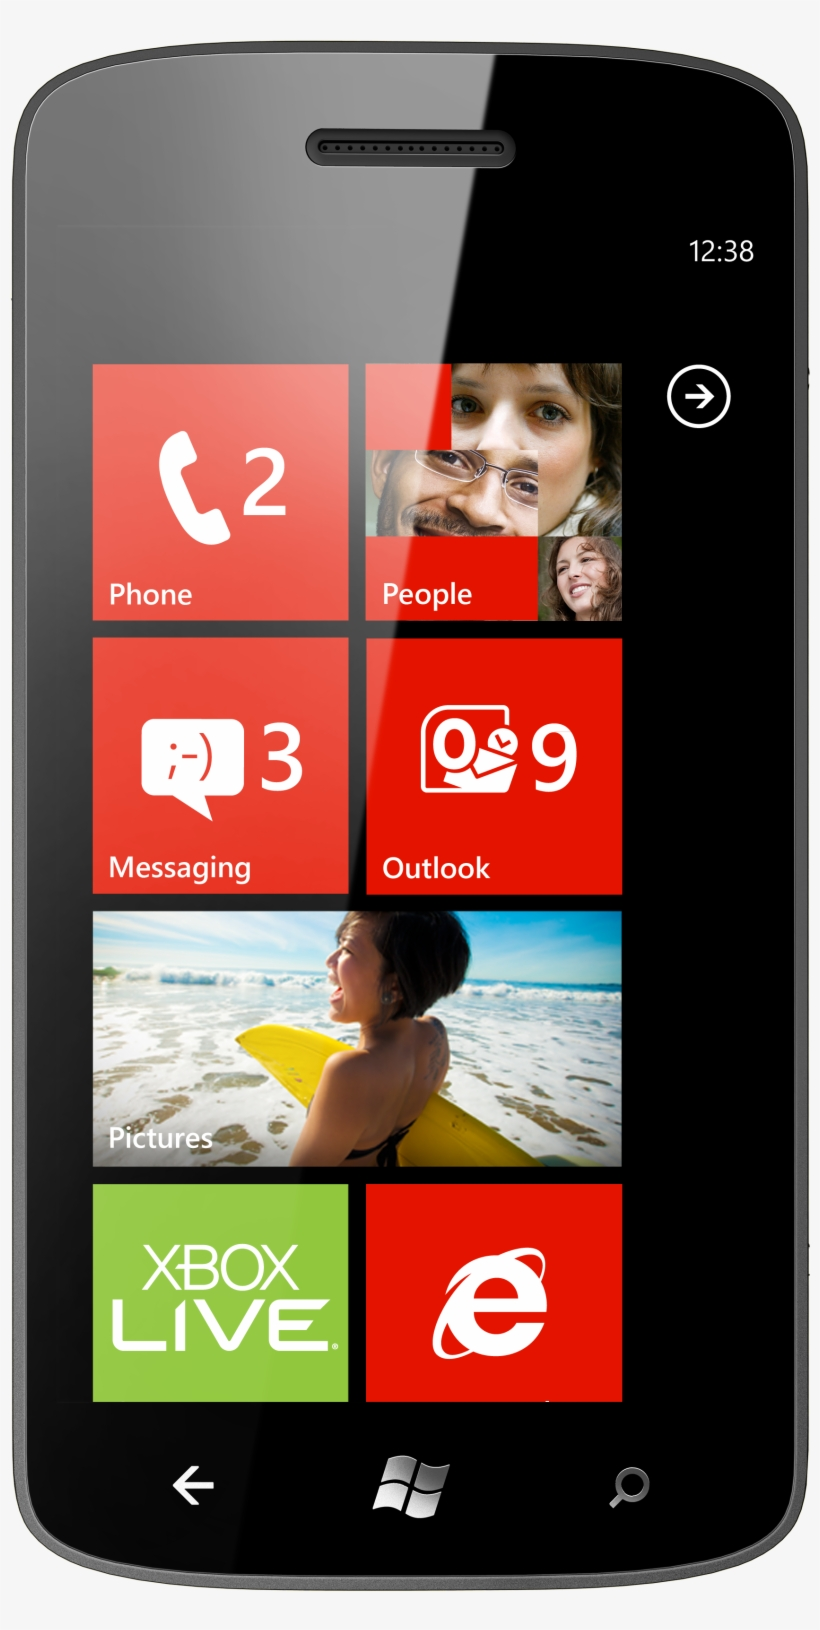 Windows Phone Windows 8 Logo - Nokia Android Phone Price In Bd, transparent png #2863229